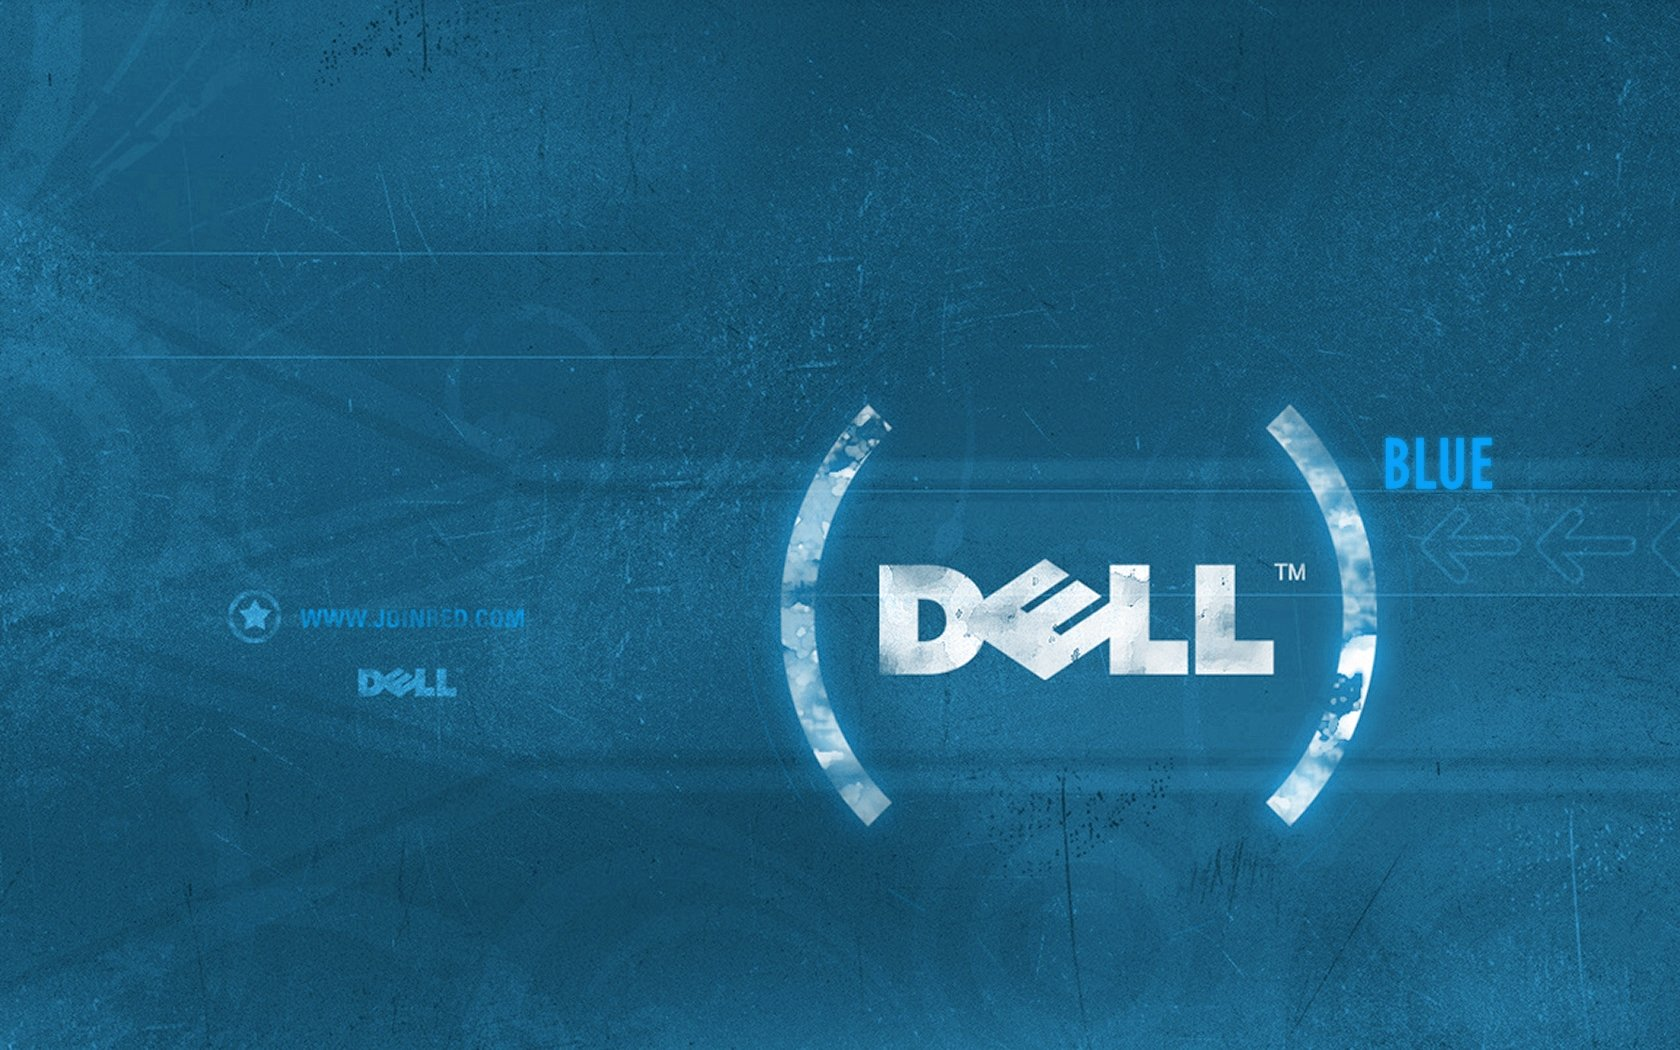 dell logo wallpapers hd